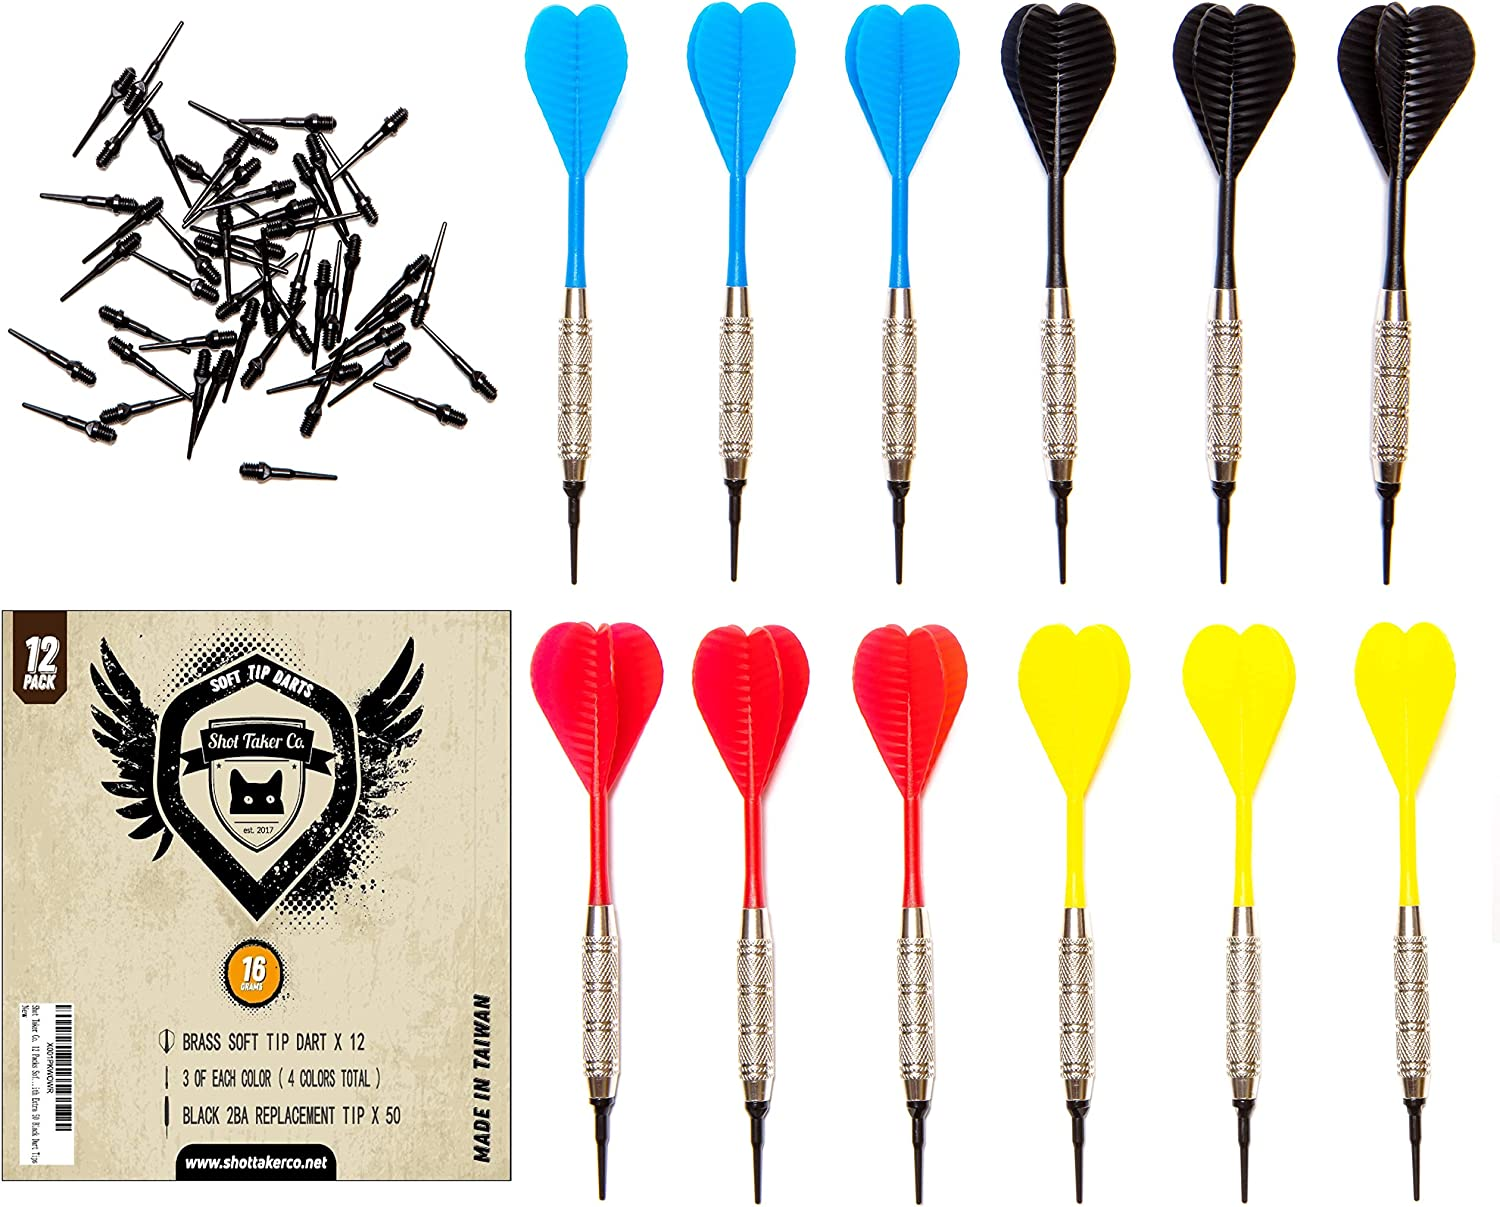 SHOT TAKER CO. EST. 2017 Soft Tip Darts Set |12 pc Bar Darts | 50 Extra Black 2BA Tips | 3 of Each Colour| Perfect Fun Darts for 4 Players on Electronic and Plastic Dartboard